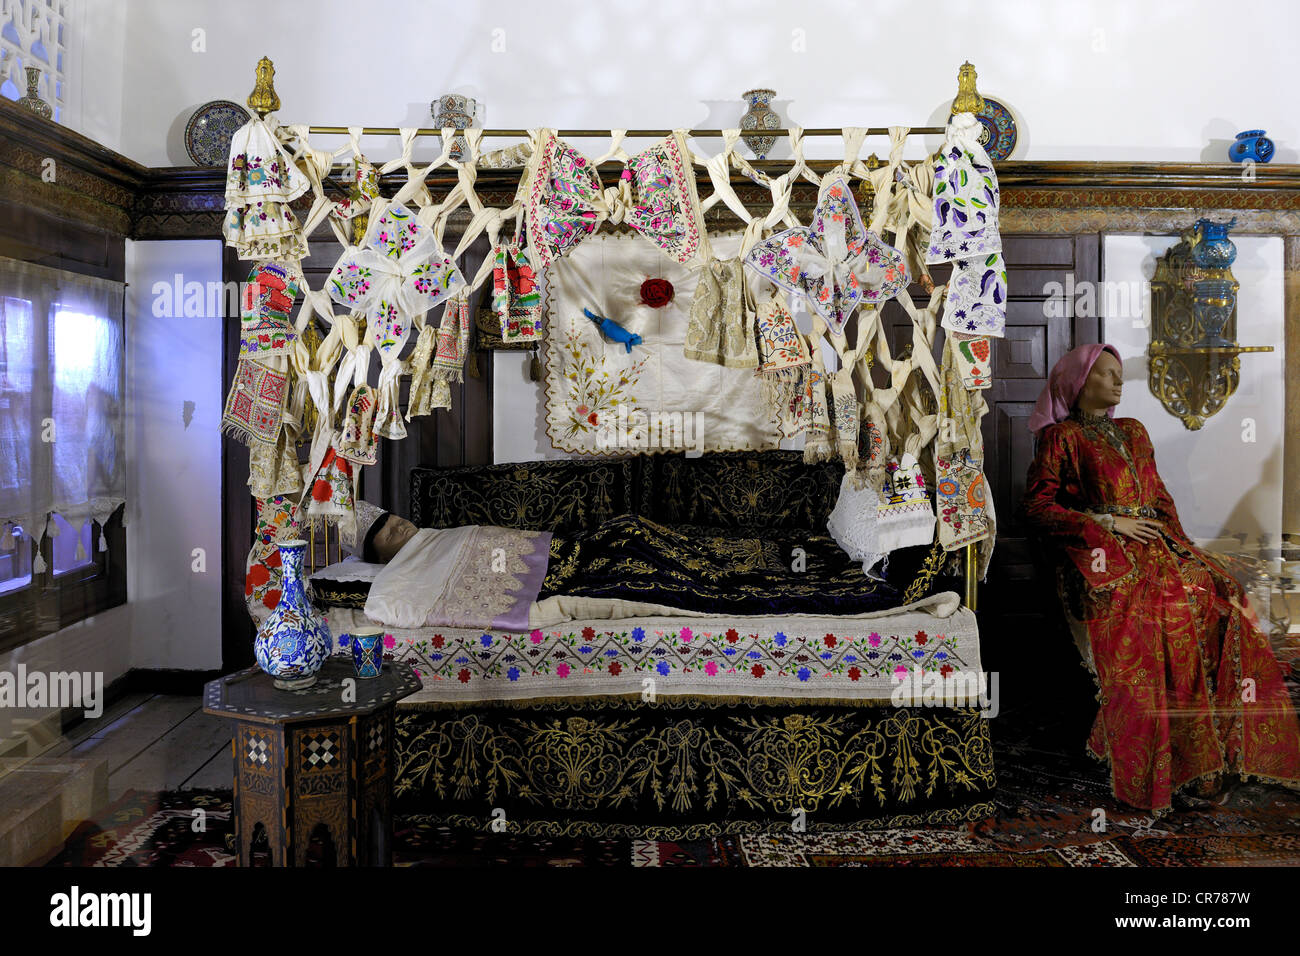 Turkey, Central Anatolia, Ankara, the Ethnographic Museum, the circumcision room - Stock Image